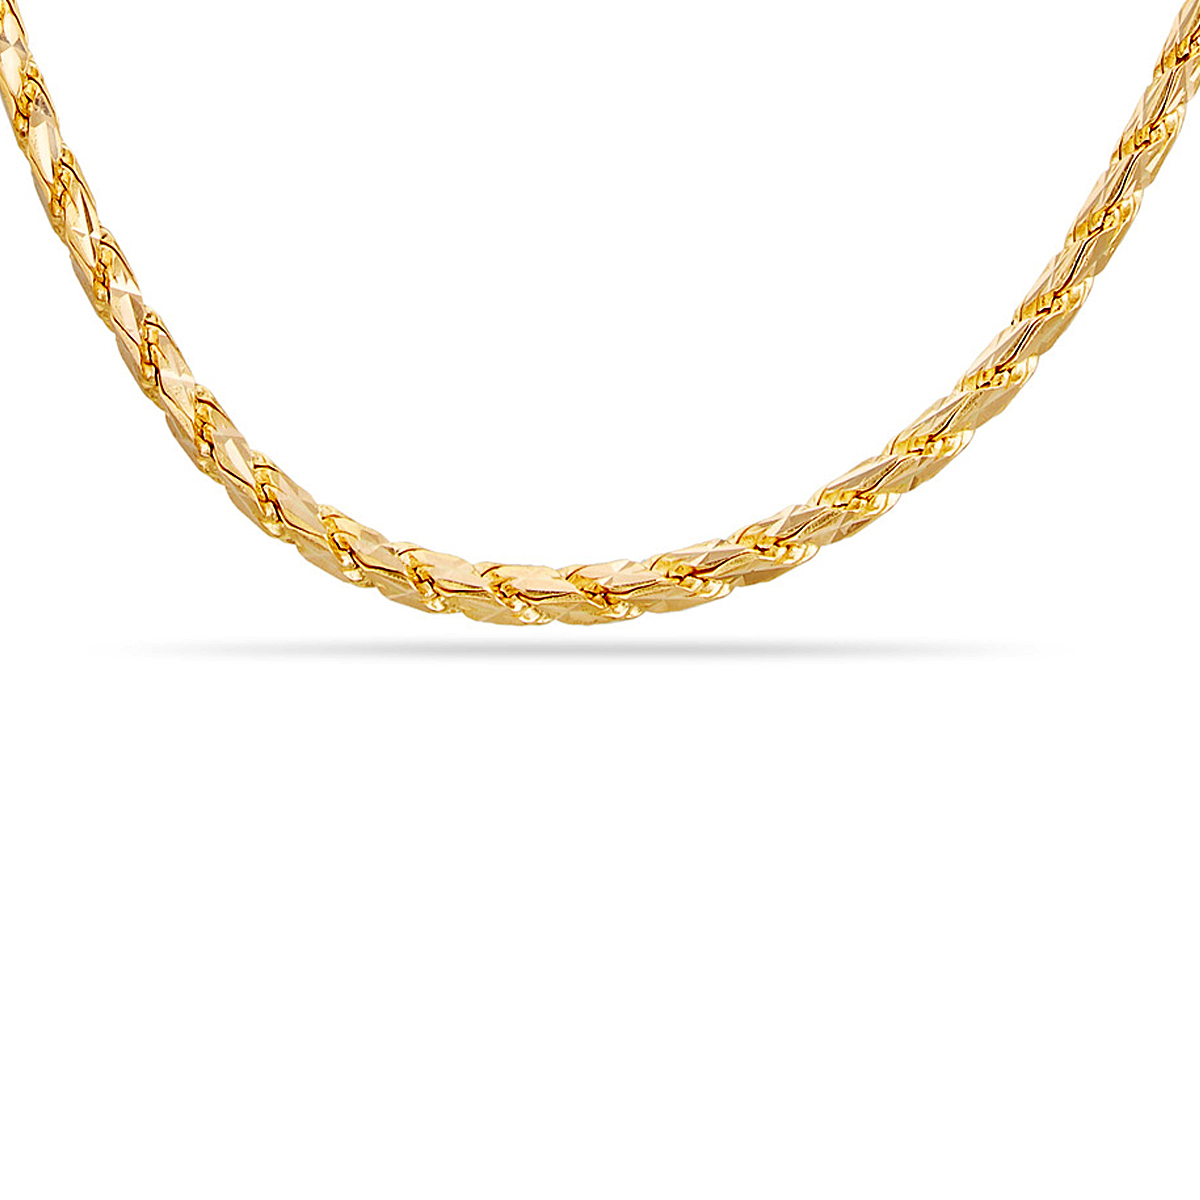 Square Rope Chain With Hallmark  - SVTM-105-0051